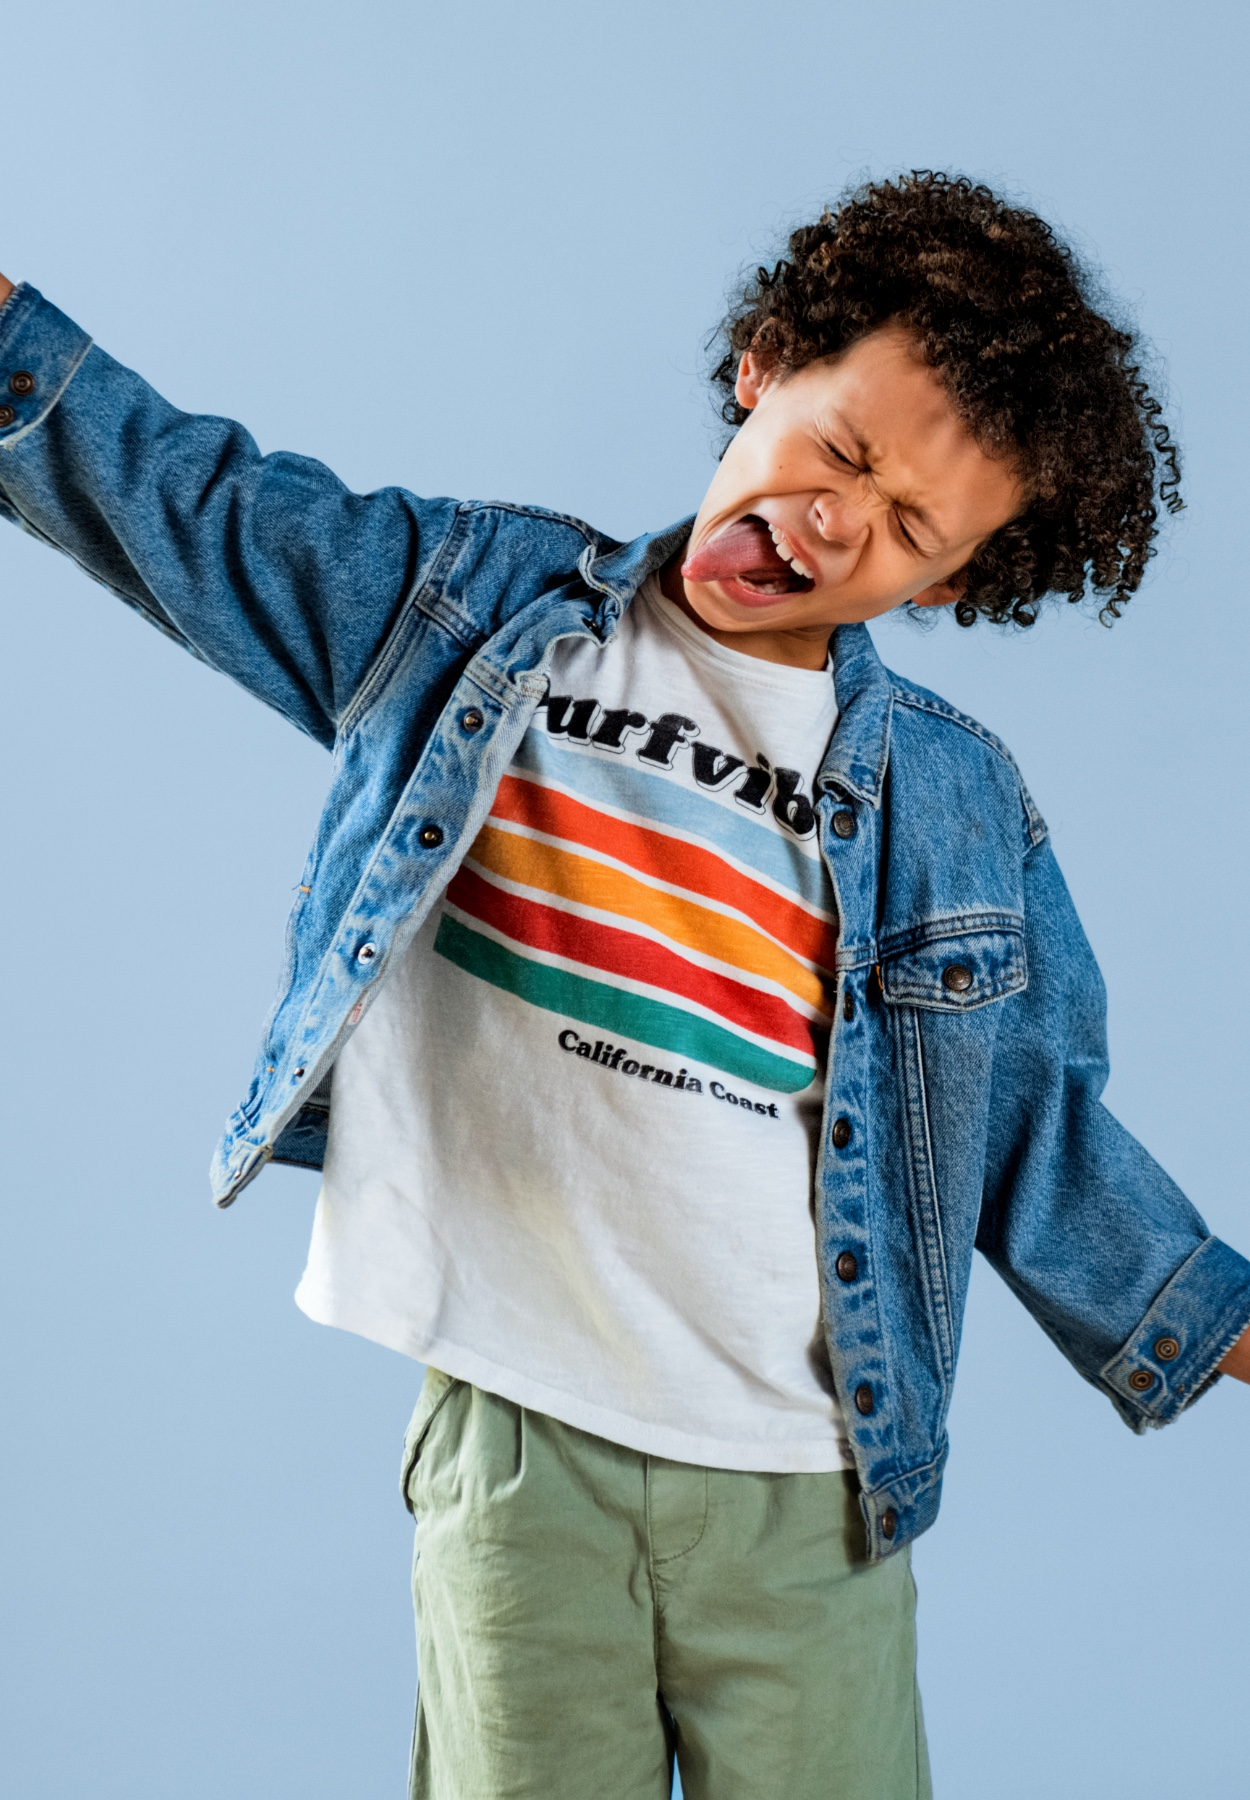 Boy with curly brown hair making face wearing jean jacket